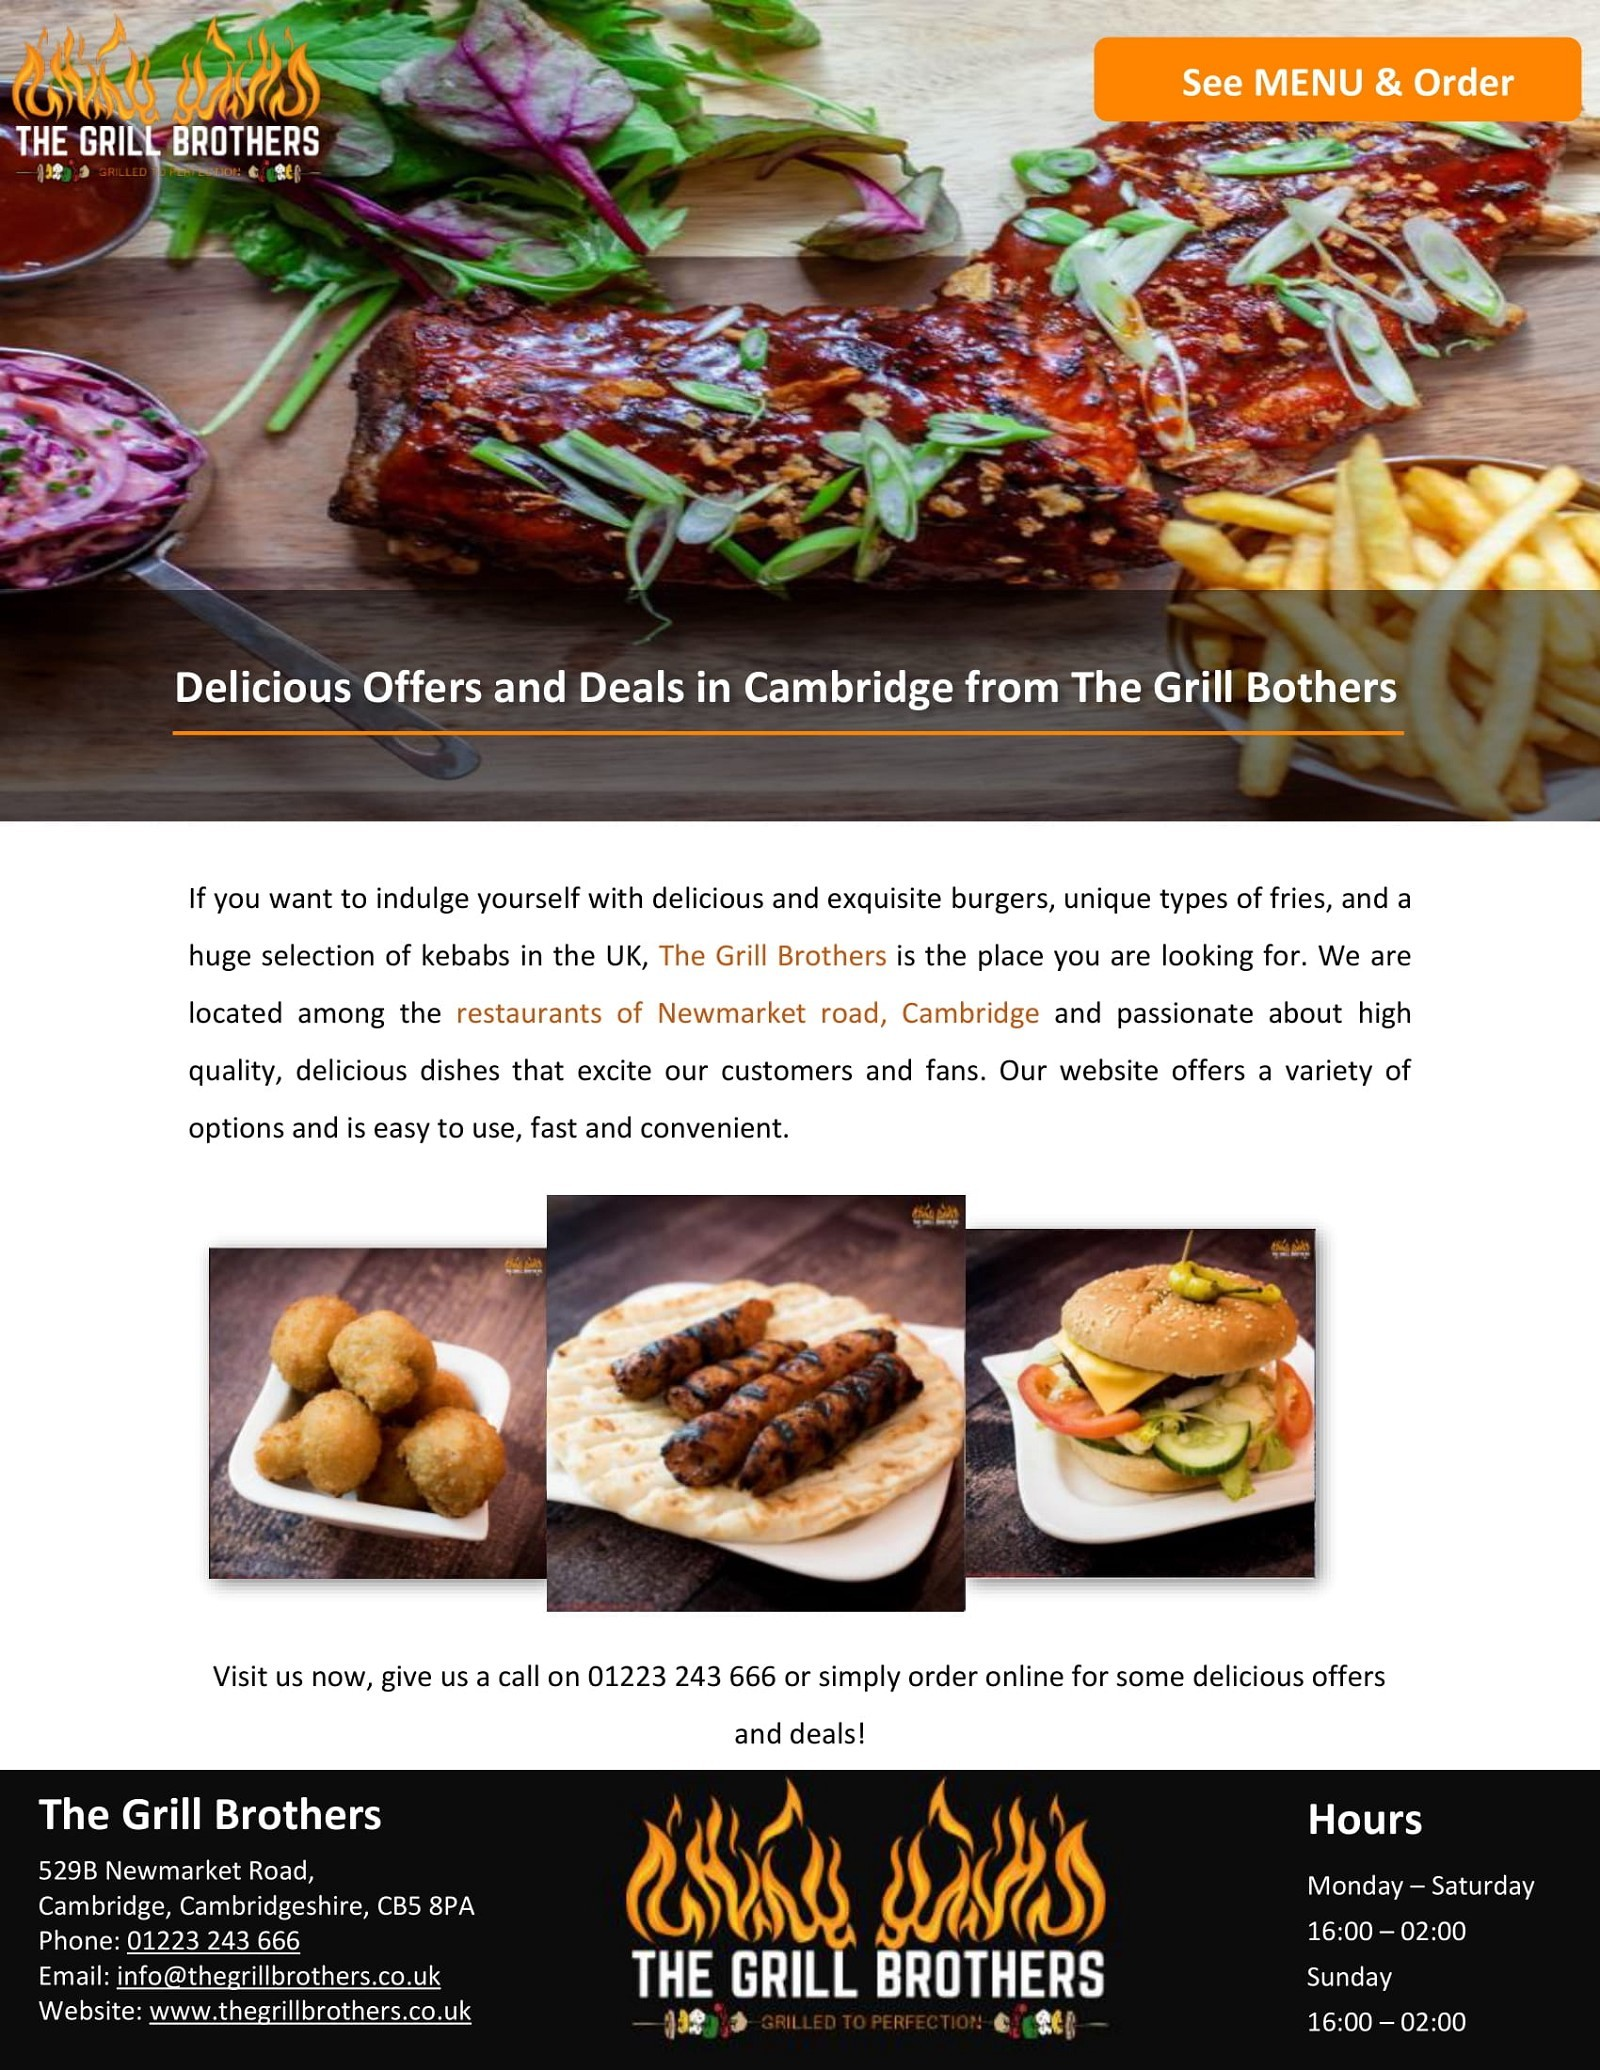 Delicious Offers and Deals in Cambridge from The Grill Bothers